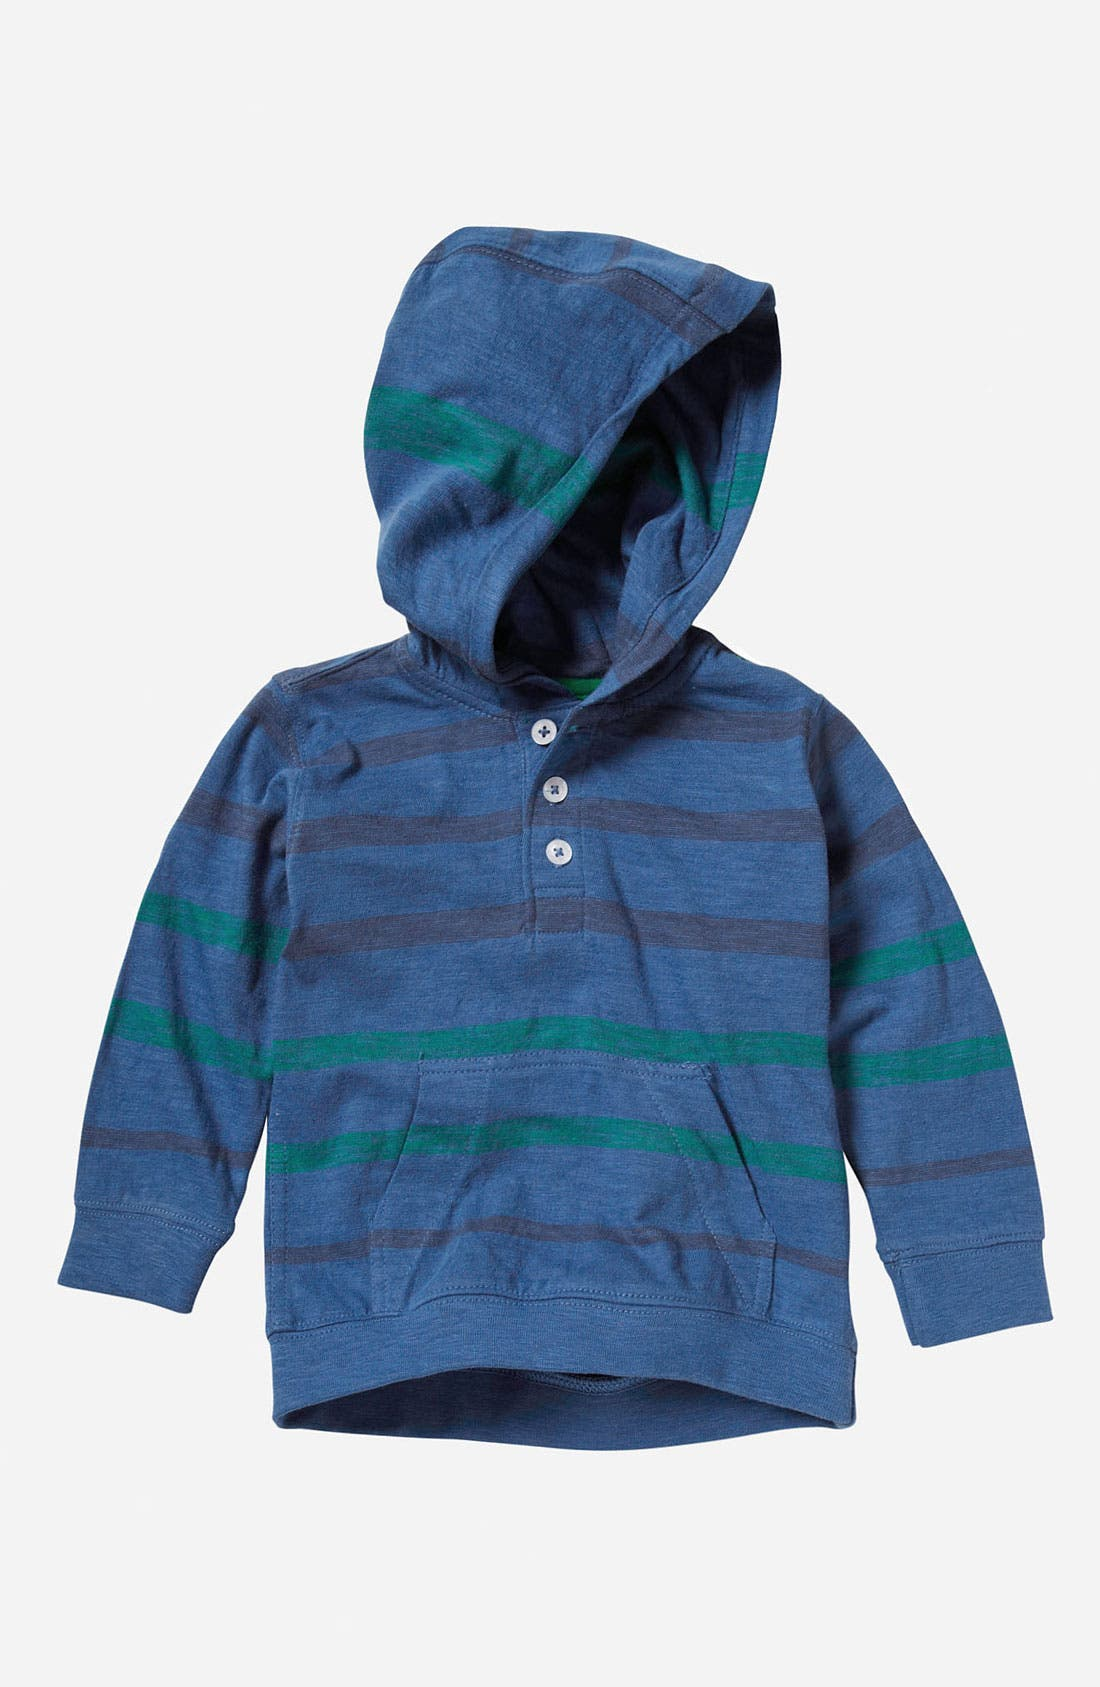 Alternate Image 1 Selected - Quiksilver 'Merz' Hooded Henley Top (Infant)